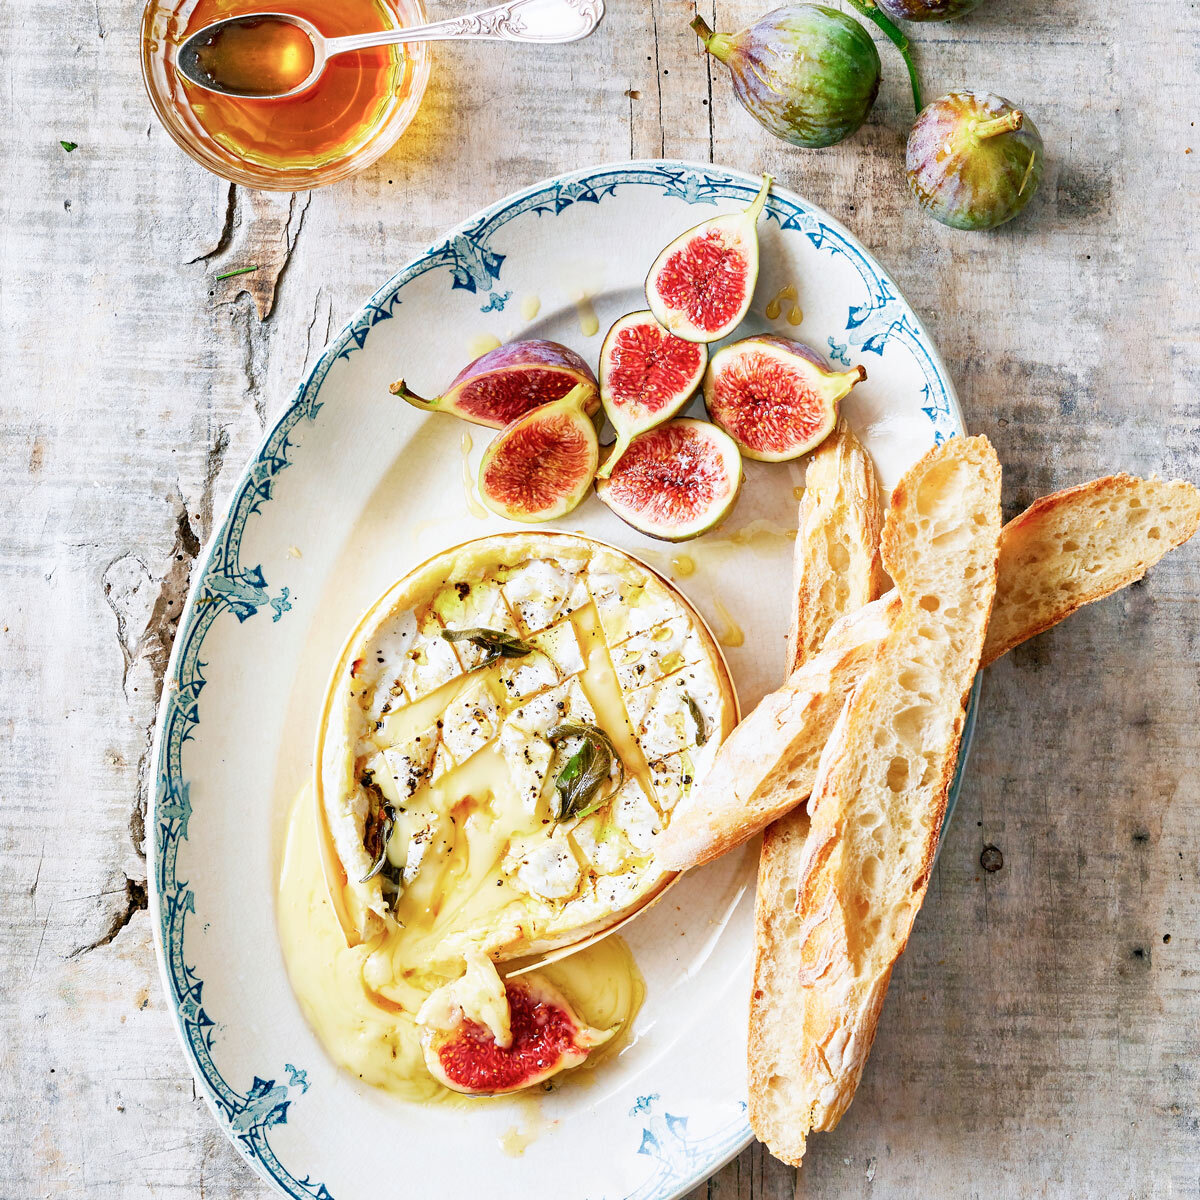 Vivier baked camembert with figs